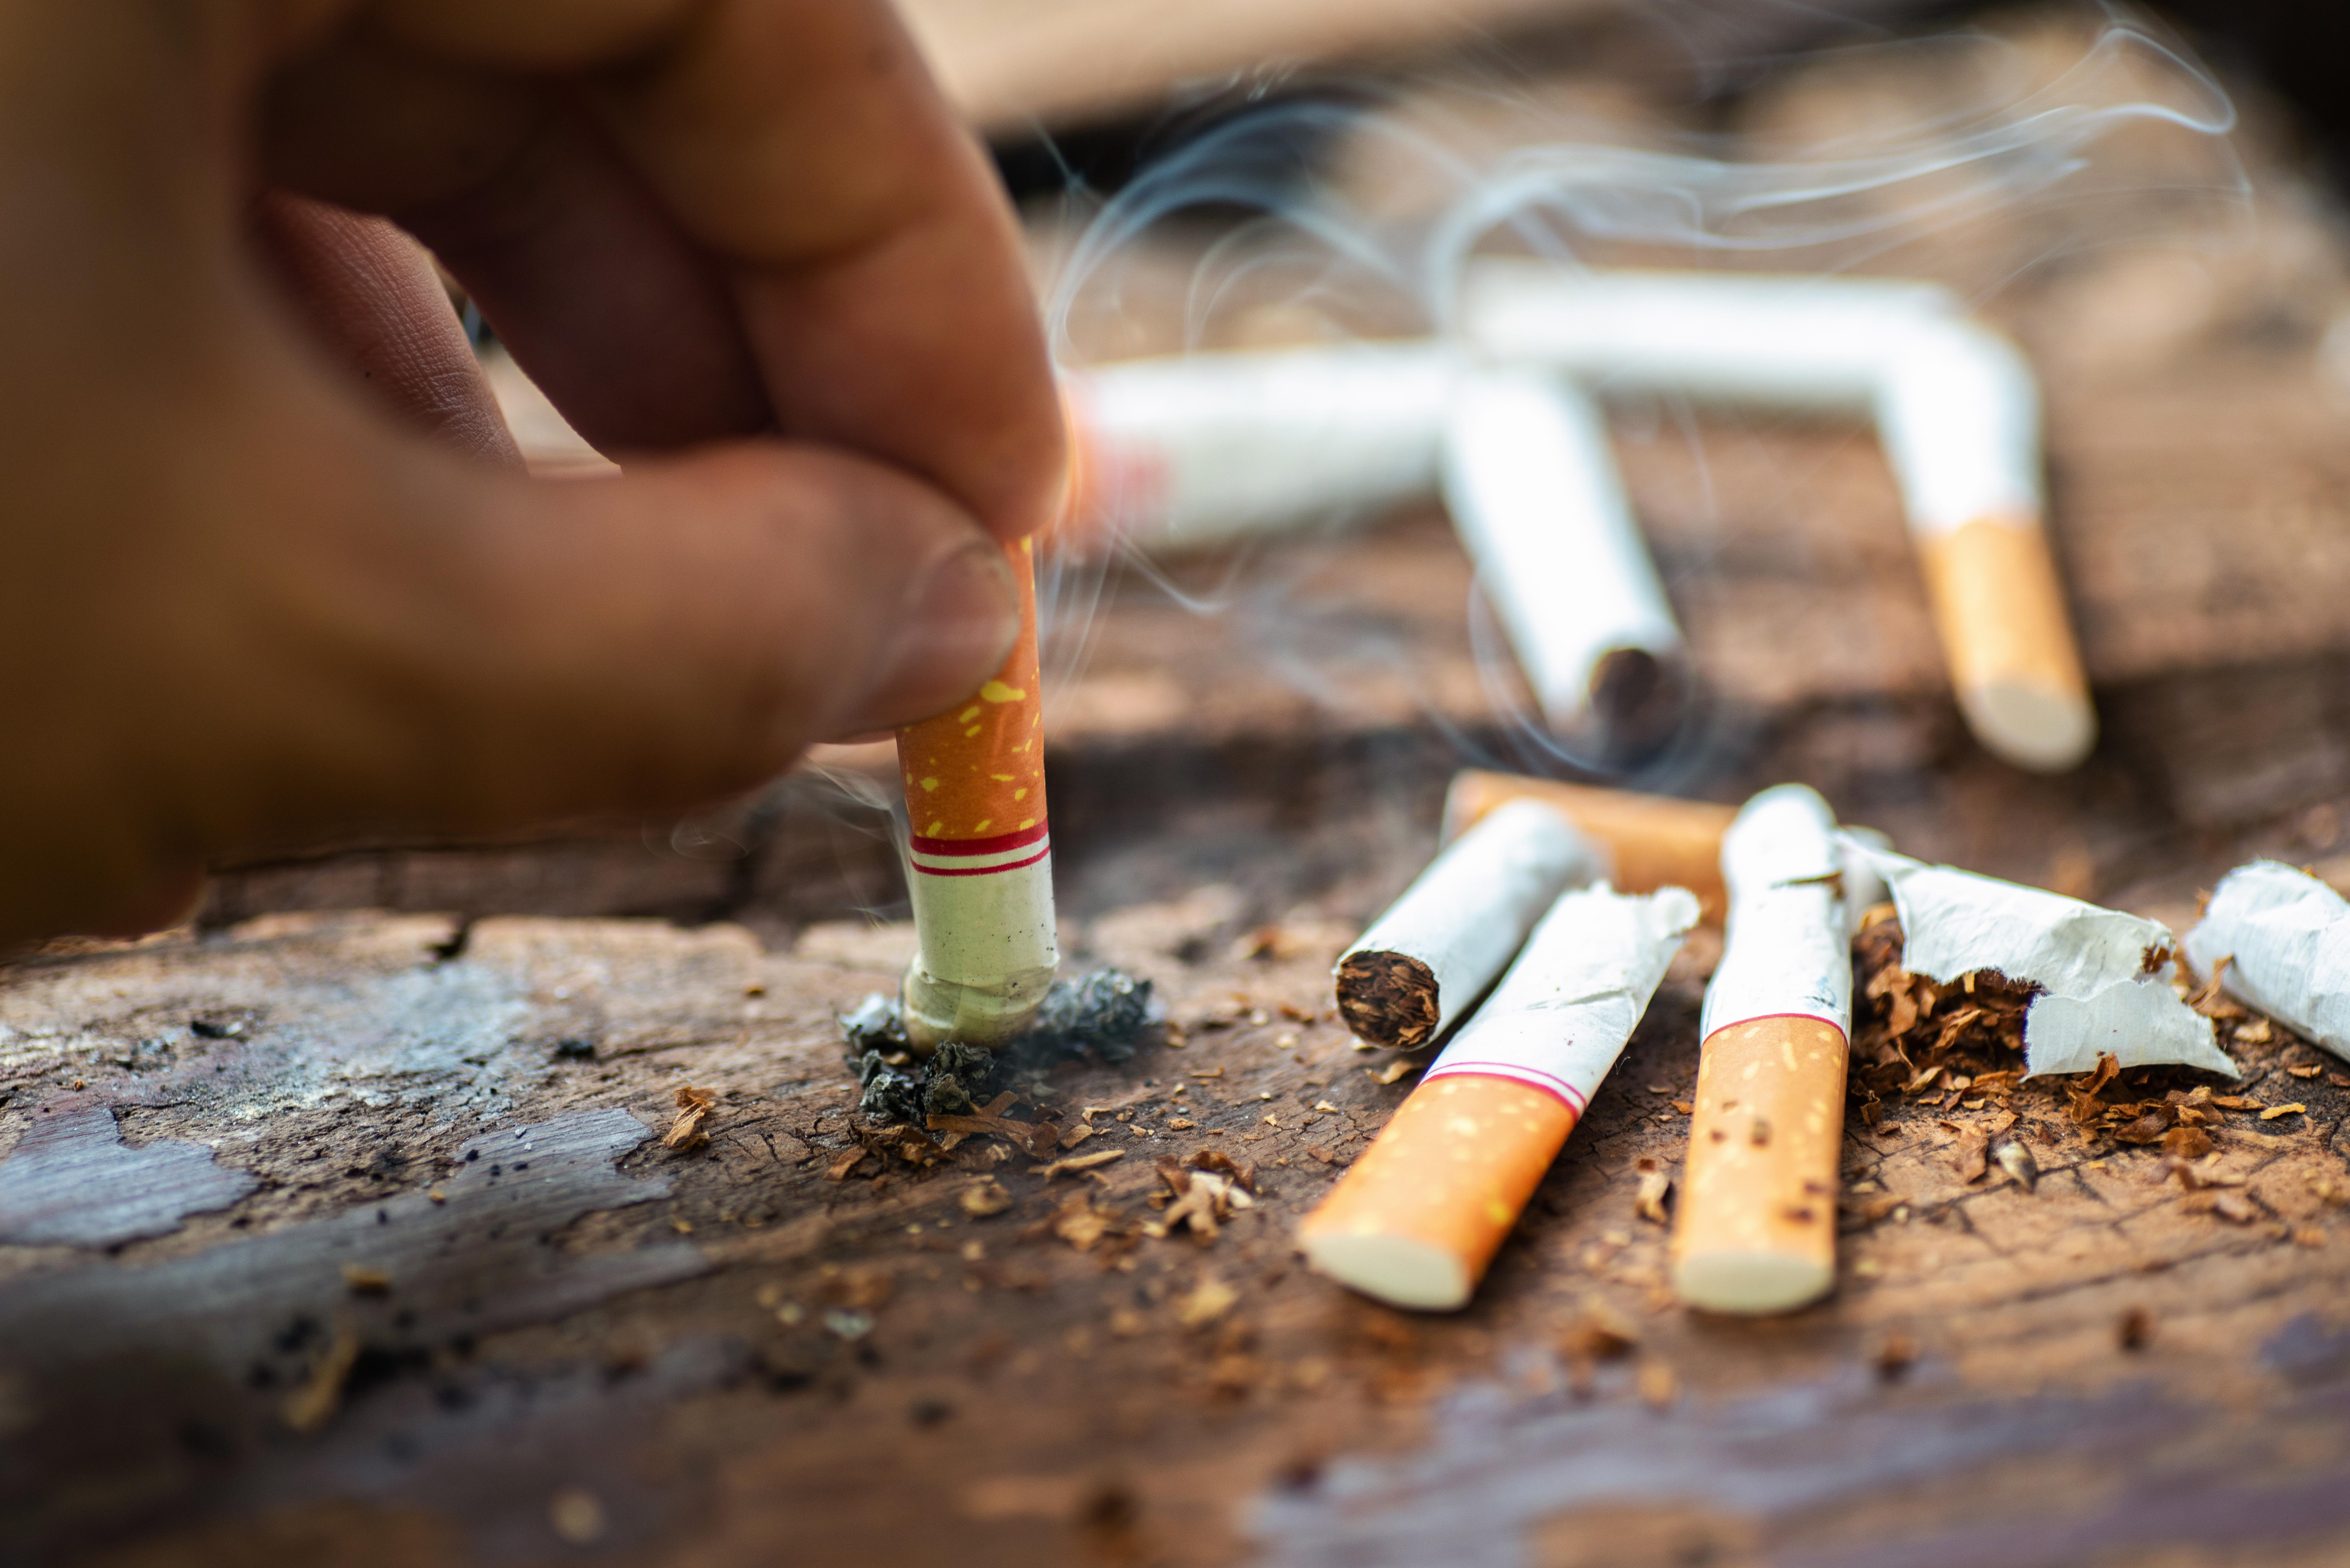 Smoking and second-hand smoke really puts your lung health at risk.